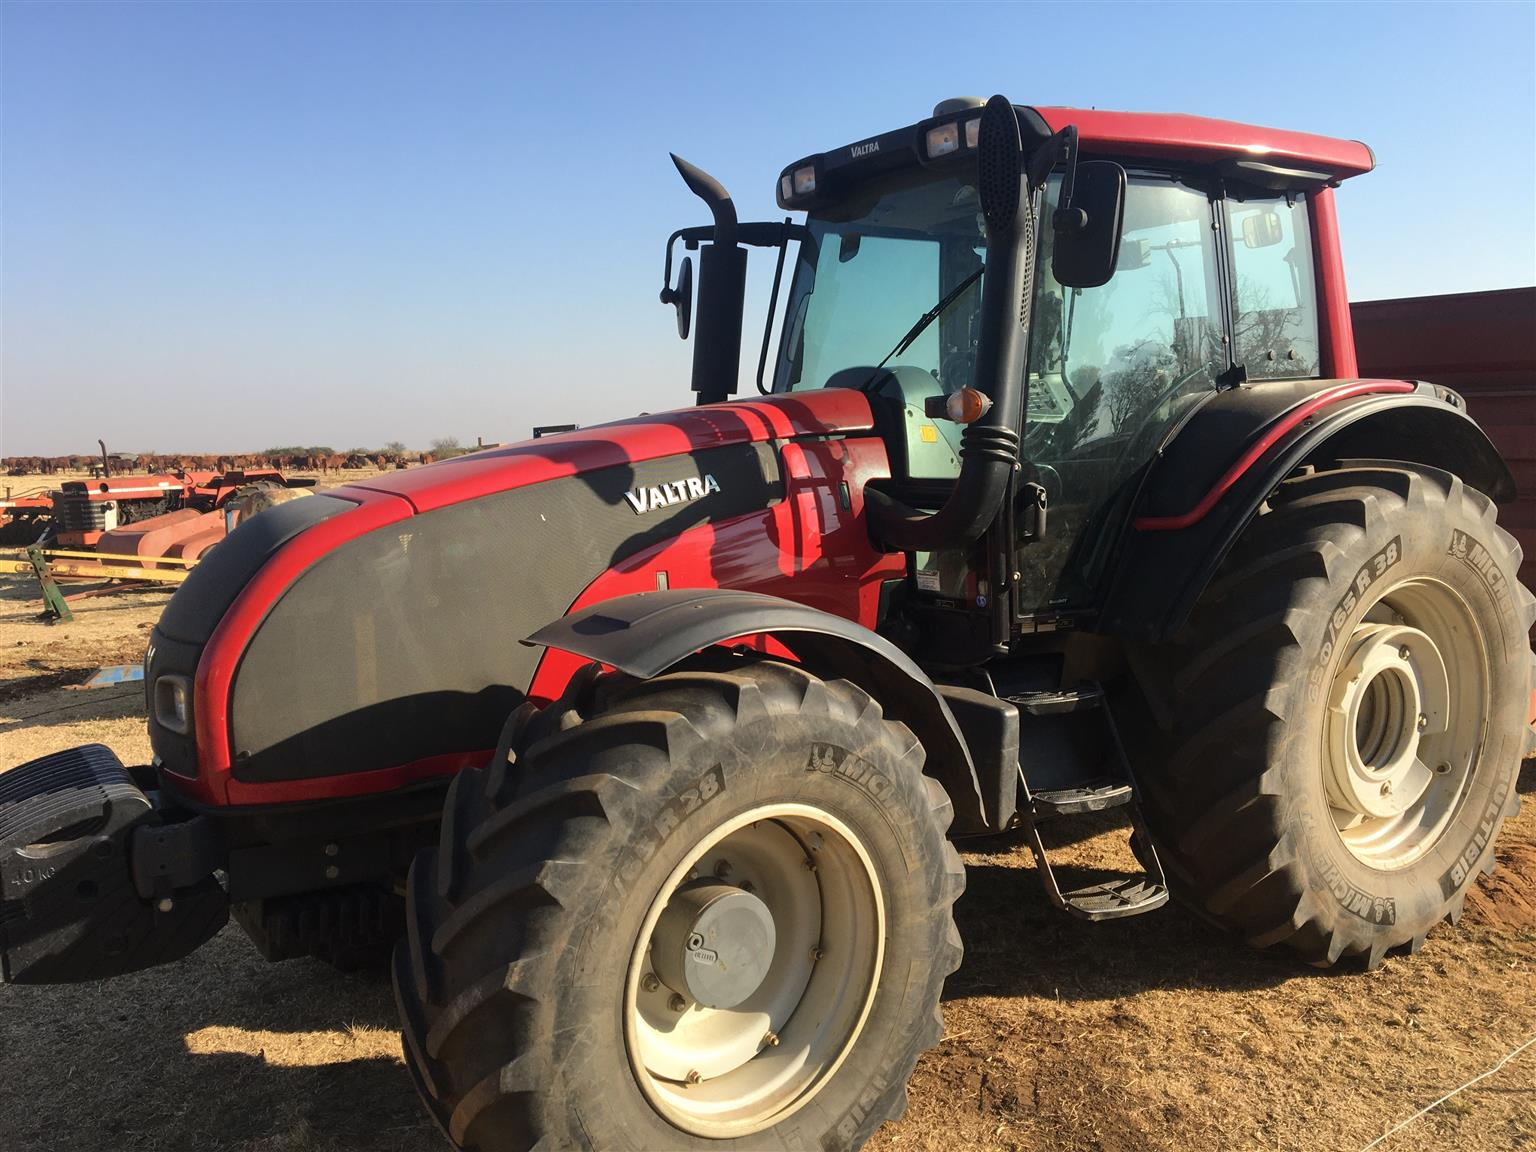 Valtra T171 with GPS & Auto-steer